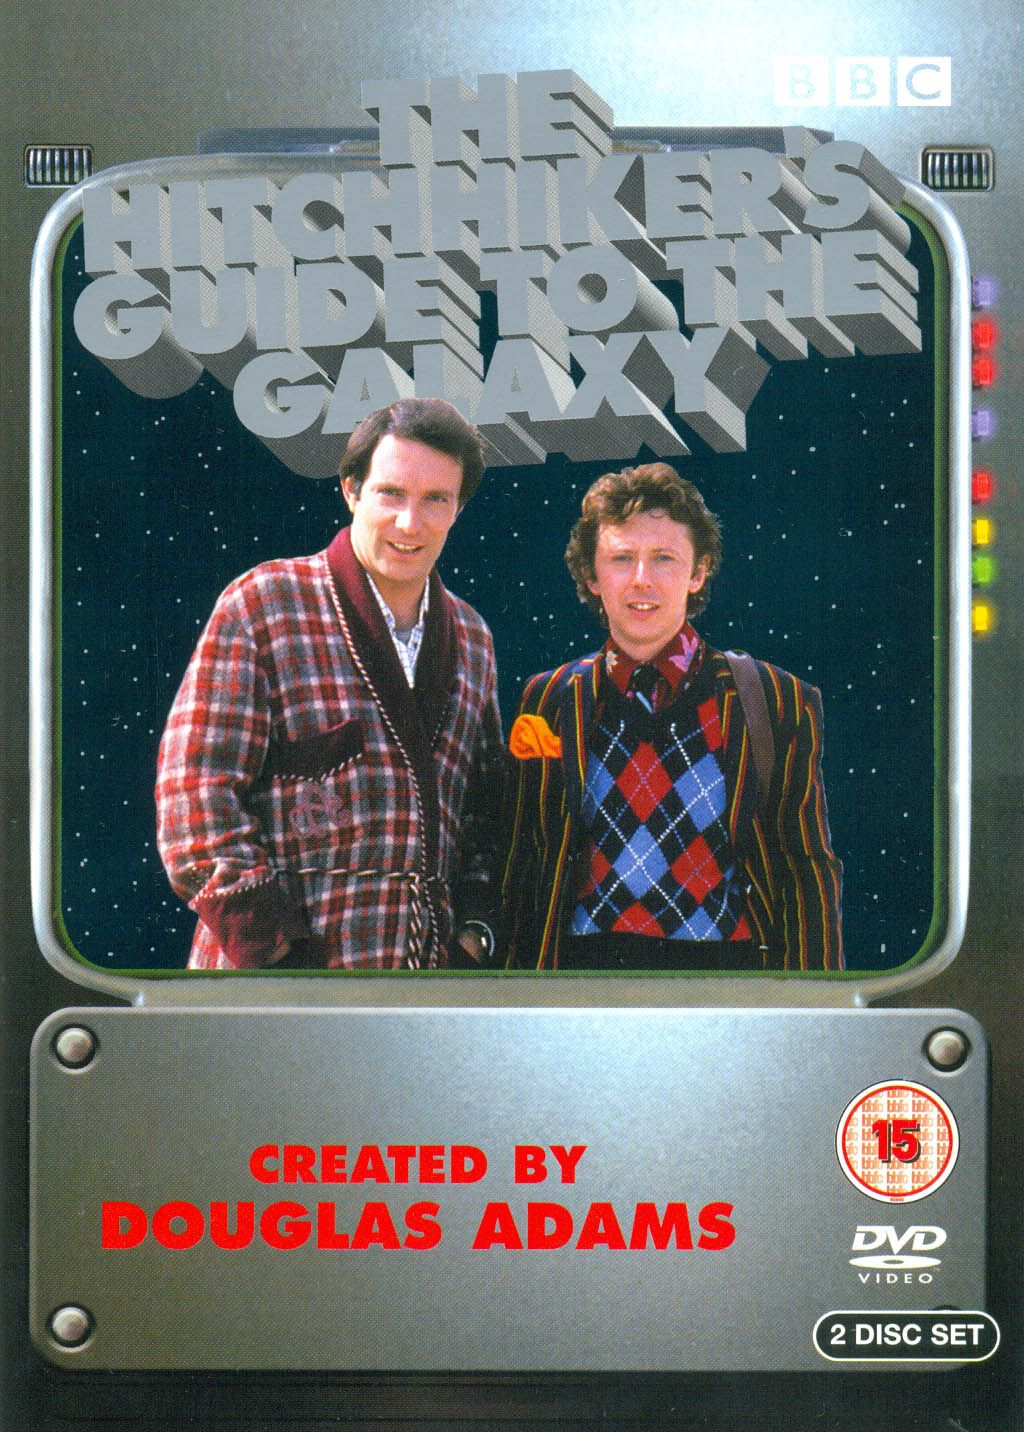 Hitchhikers Guide To The Galaxy 1981 If Memory Serves Me Correctly It Was Based On The Hitchhikers Guide To The Galaxy Guide To The Galaxy Hitchhikers Guide